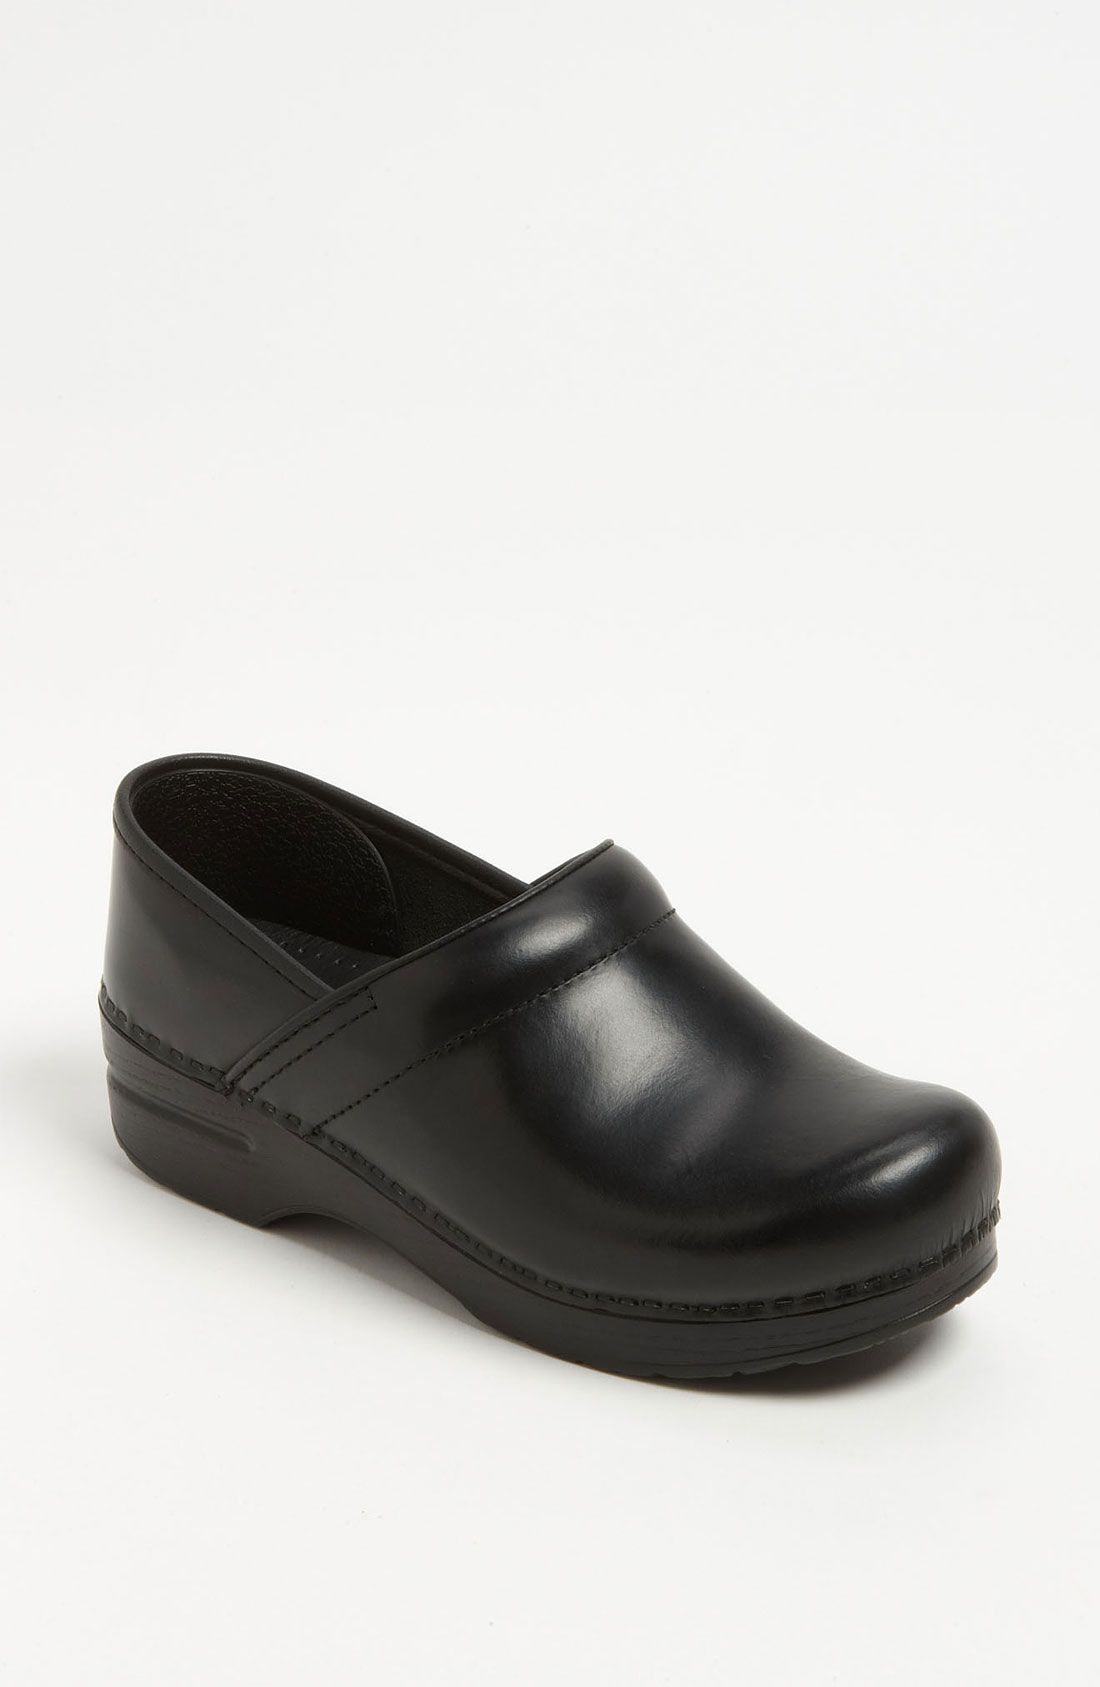 a1ed748f4fcf4 Dansko clog for work | healthcare professional | physician | doctor |  pharmacist | nurse | shoes for hospital | clinic | medical center | stand  all day | ...